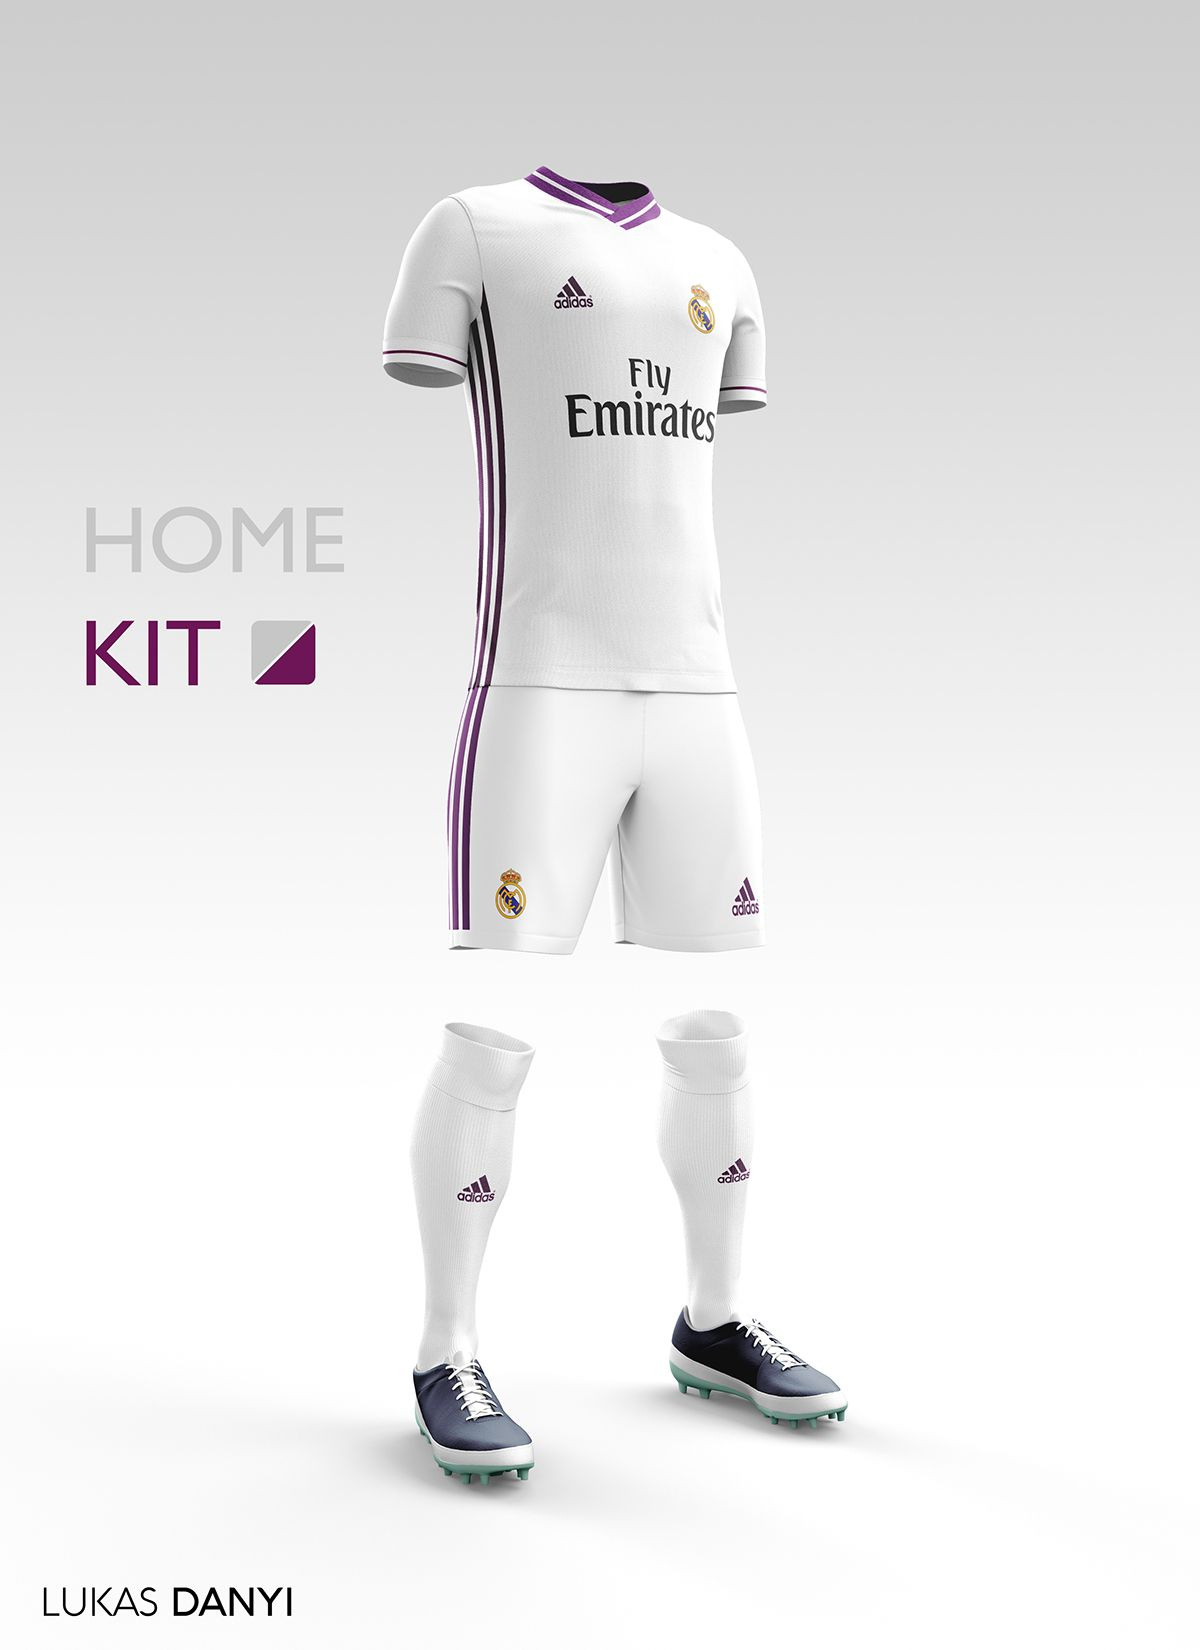 newest 1e0a8 27509 I designed football kits for Real Madrid CF for the upcoming ...